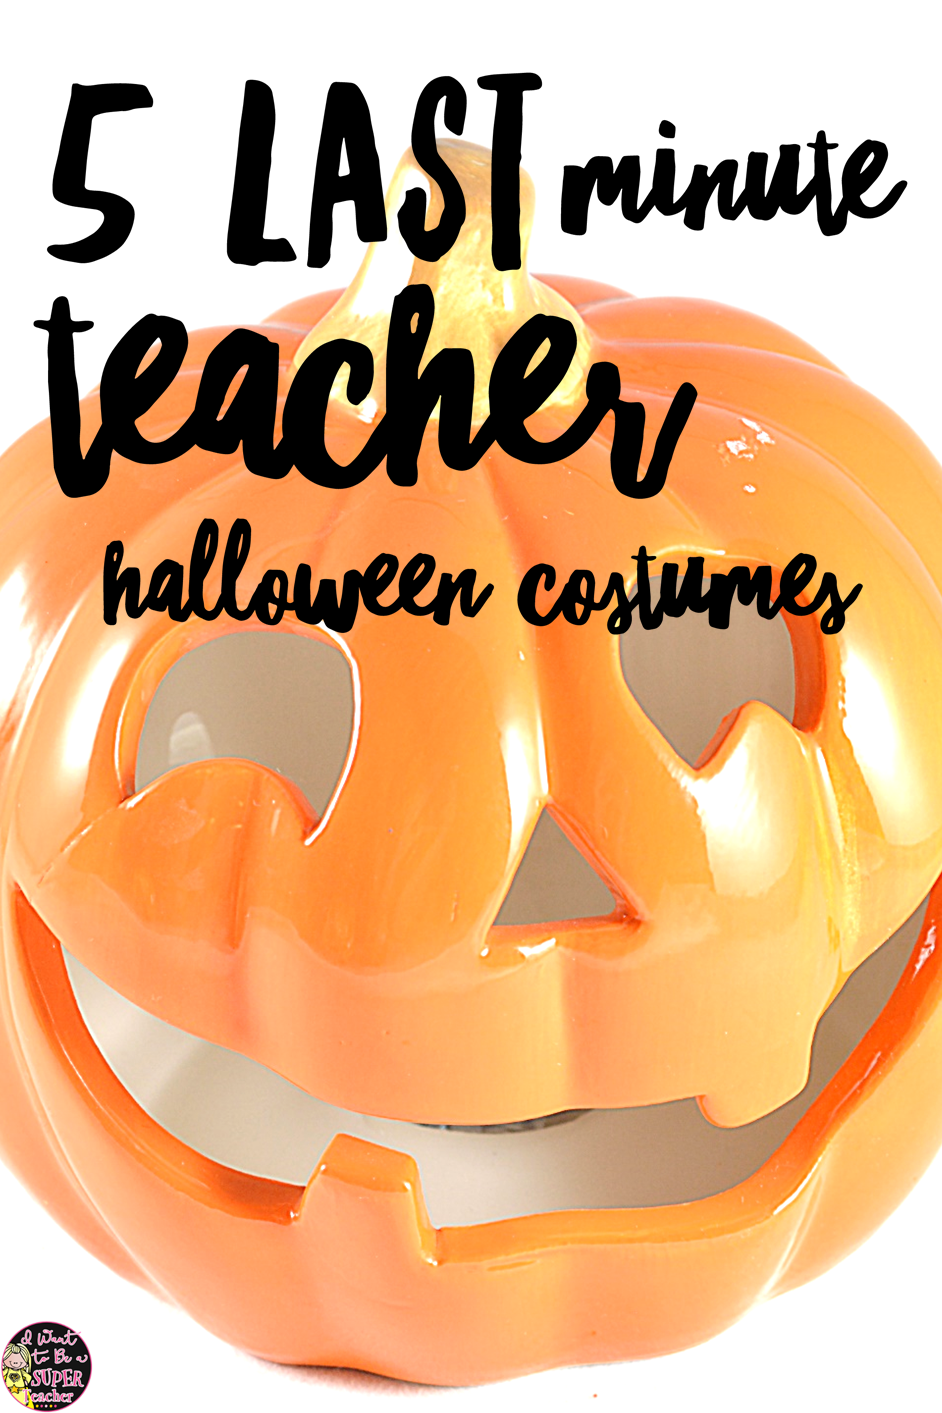 5 last minute halloween costumes for teachers i want to be a super 5 quick and easy ideas for teacher halloween costumes need something easy and creative for solutioingenieria Images